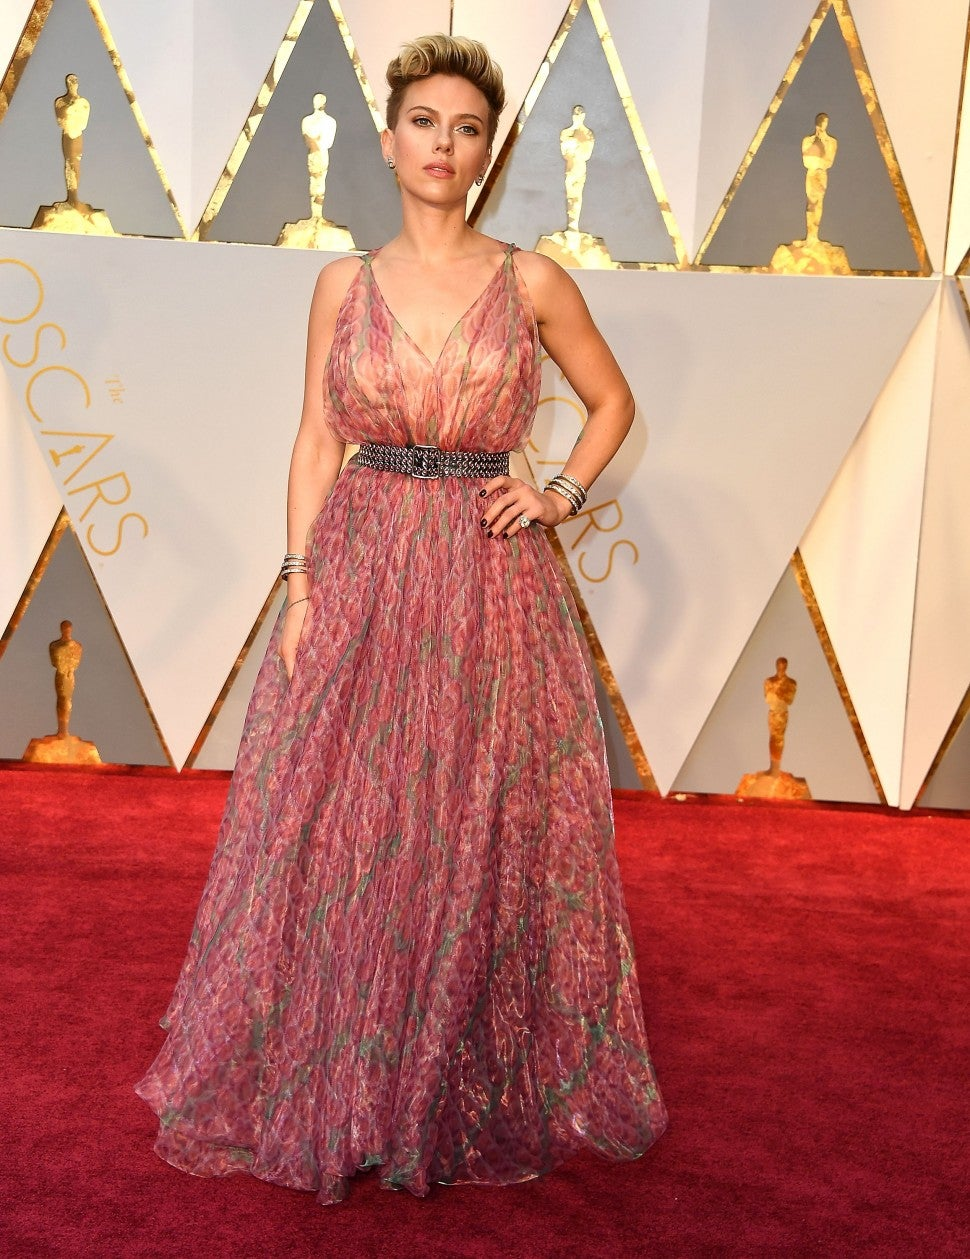 Scarlett Johansson Shines In Fringe Bustier Gown At 2020 Oscars Entertainment Tonight